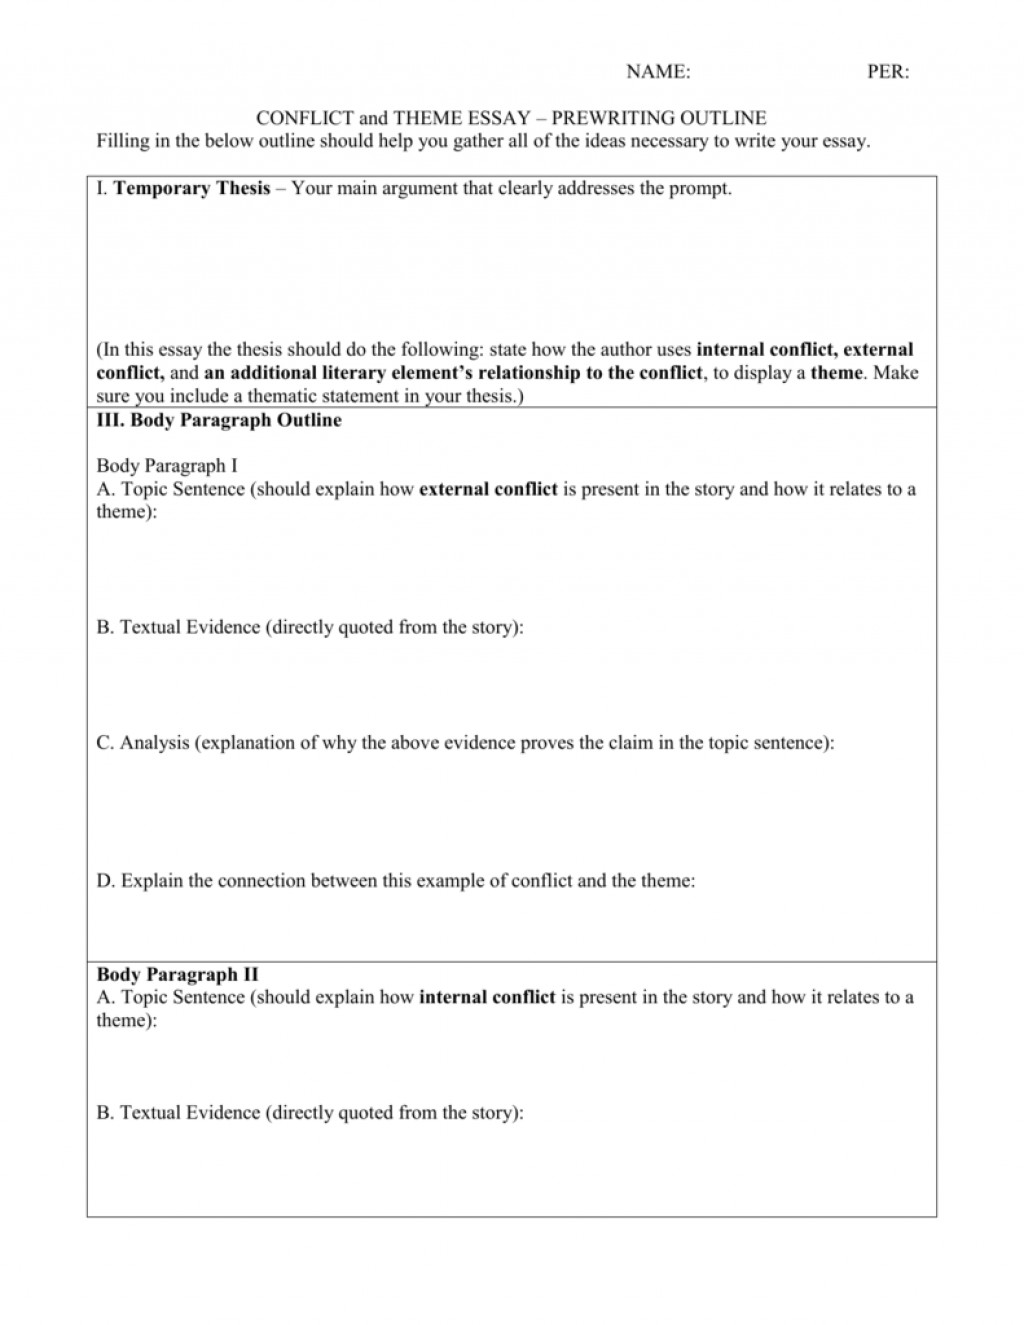 010 Theme Essay 008002500 1 Beautiful Based Examples Conclusion Example Othello Questions Large